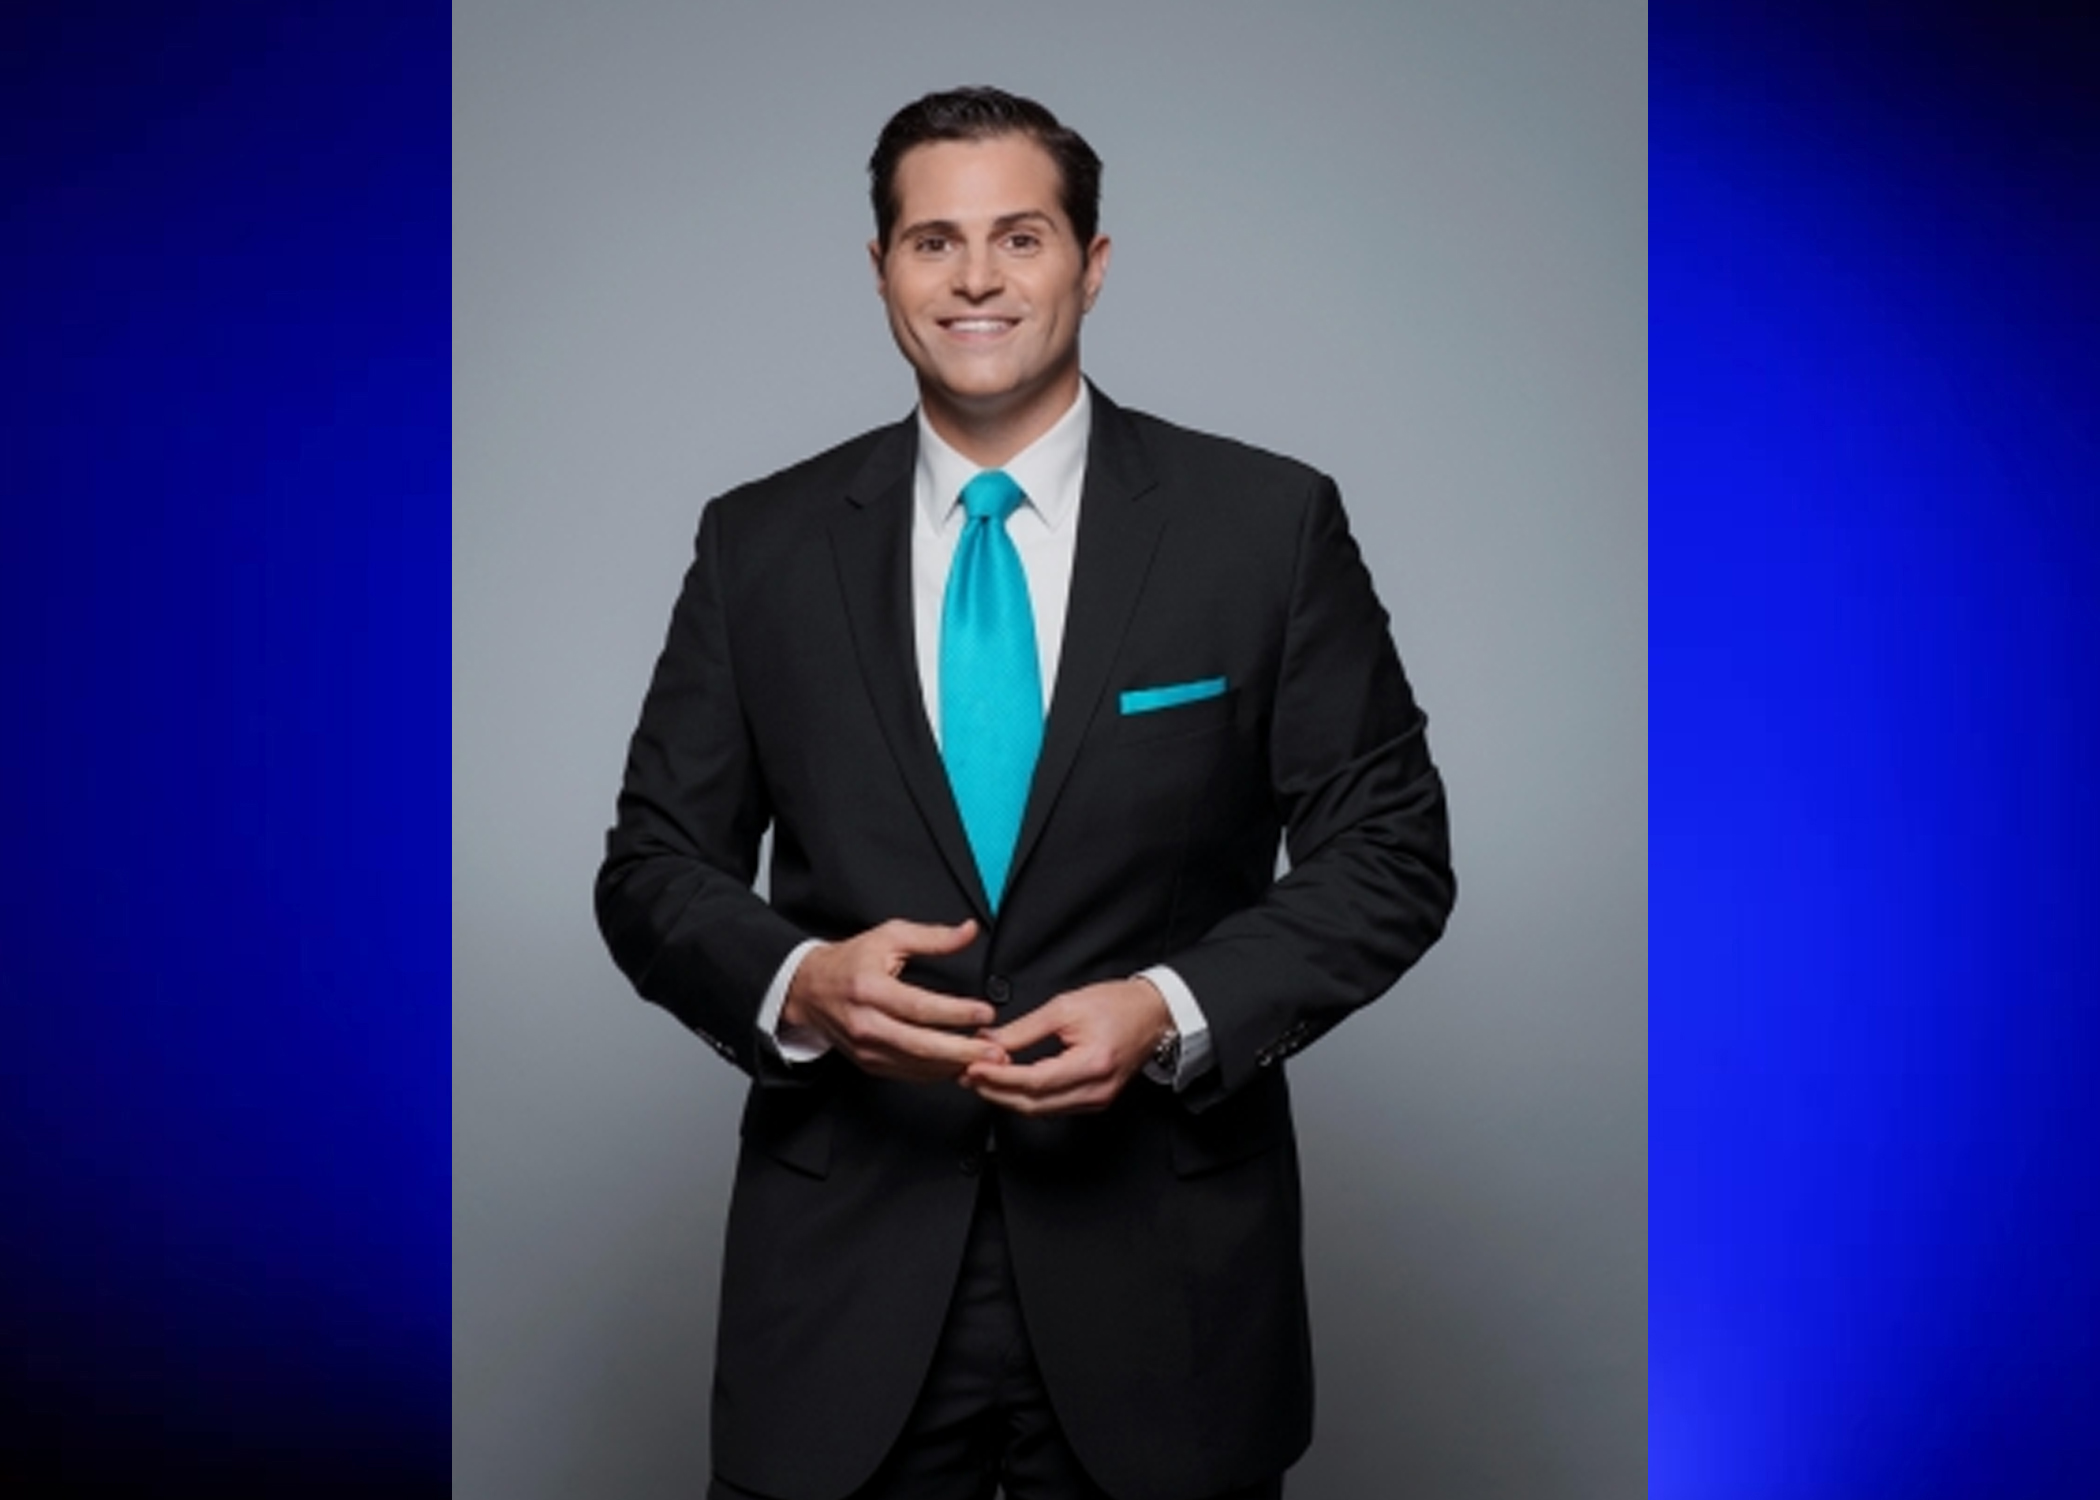 Coroner releases information on apparent suicide of ABC 33/40 News Anchor